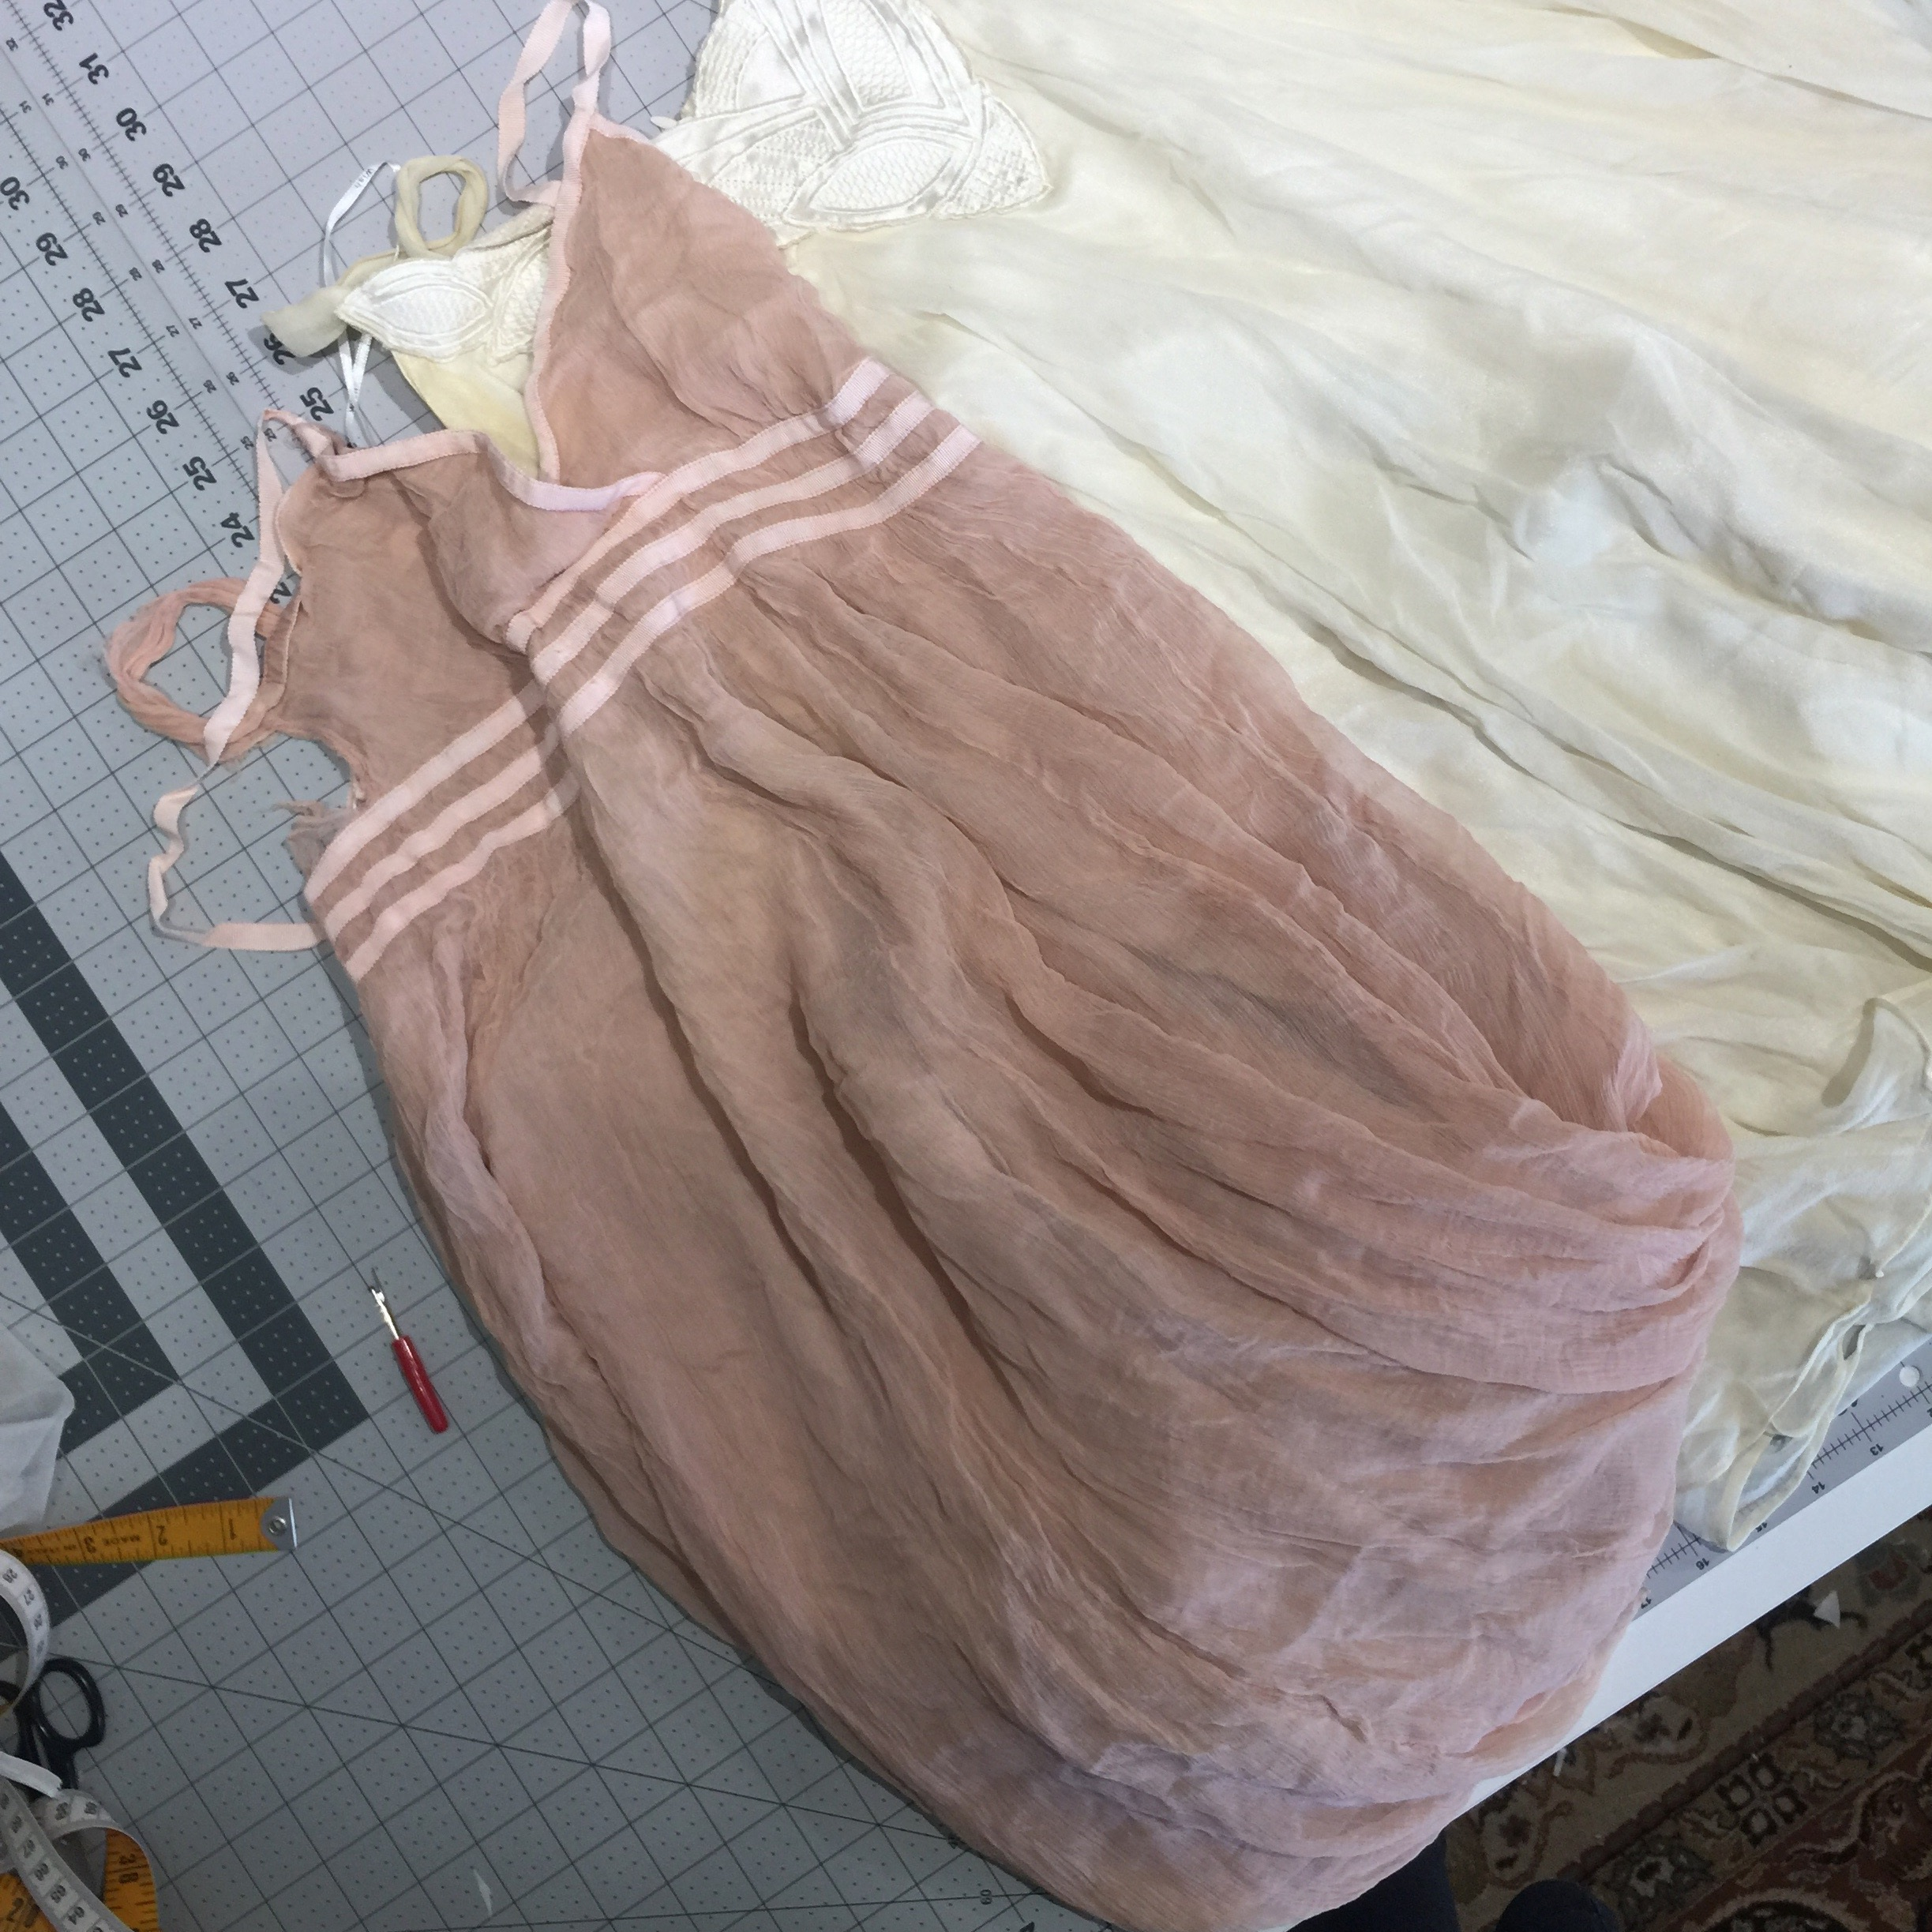 The two dresses before deconstruction